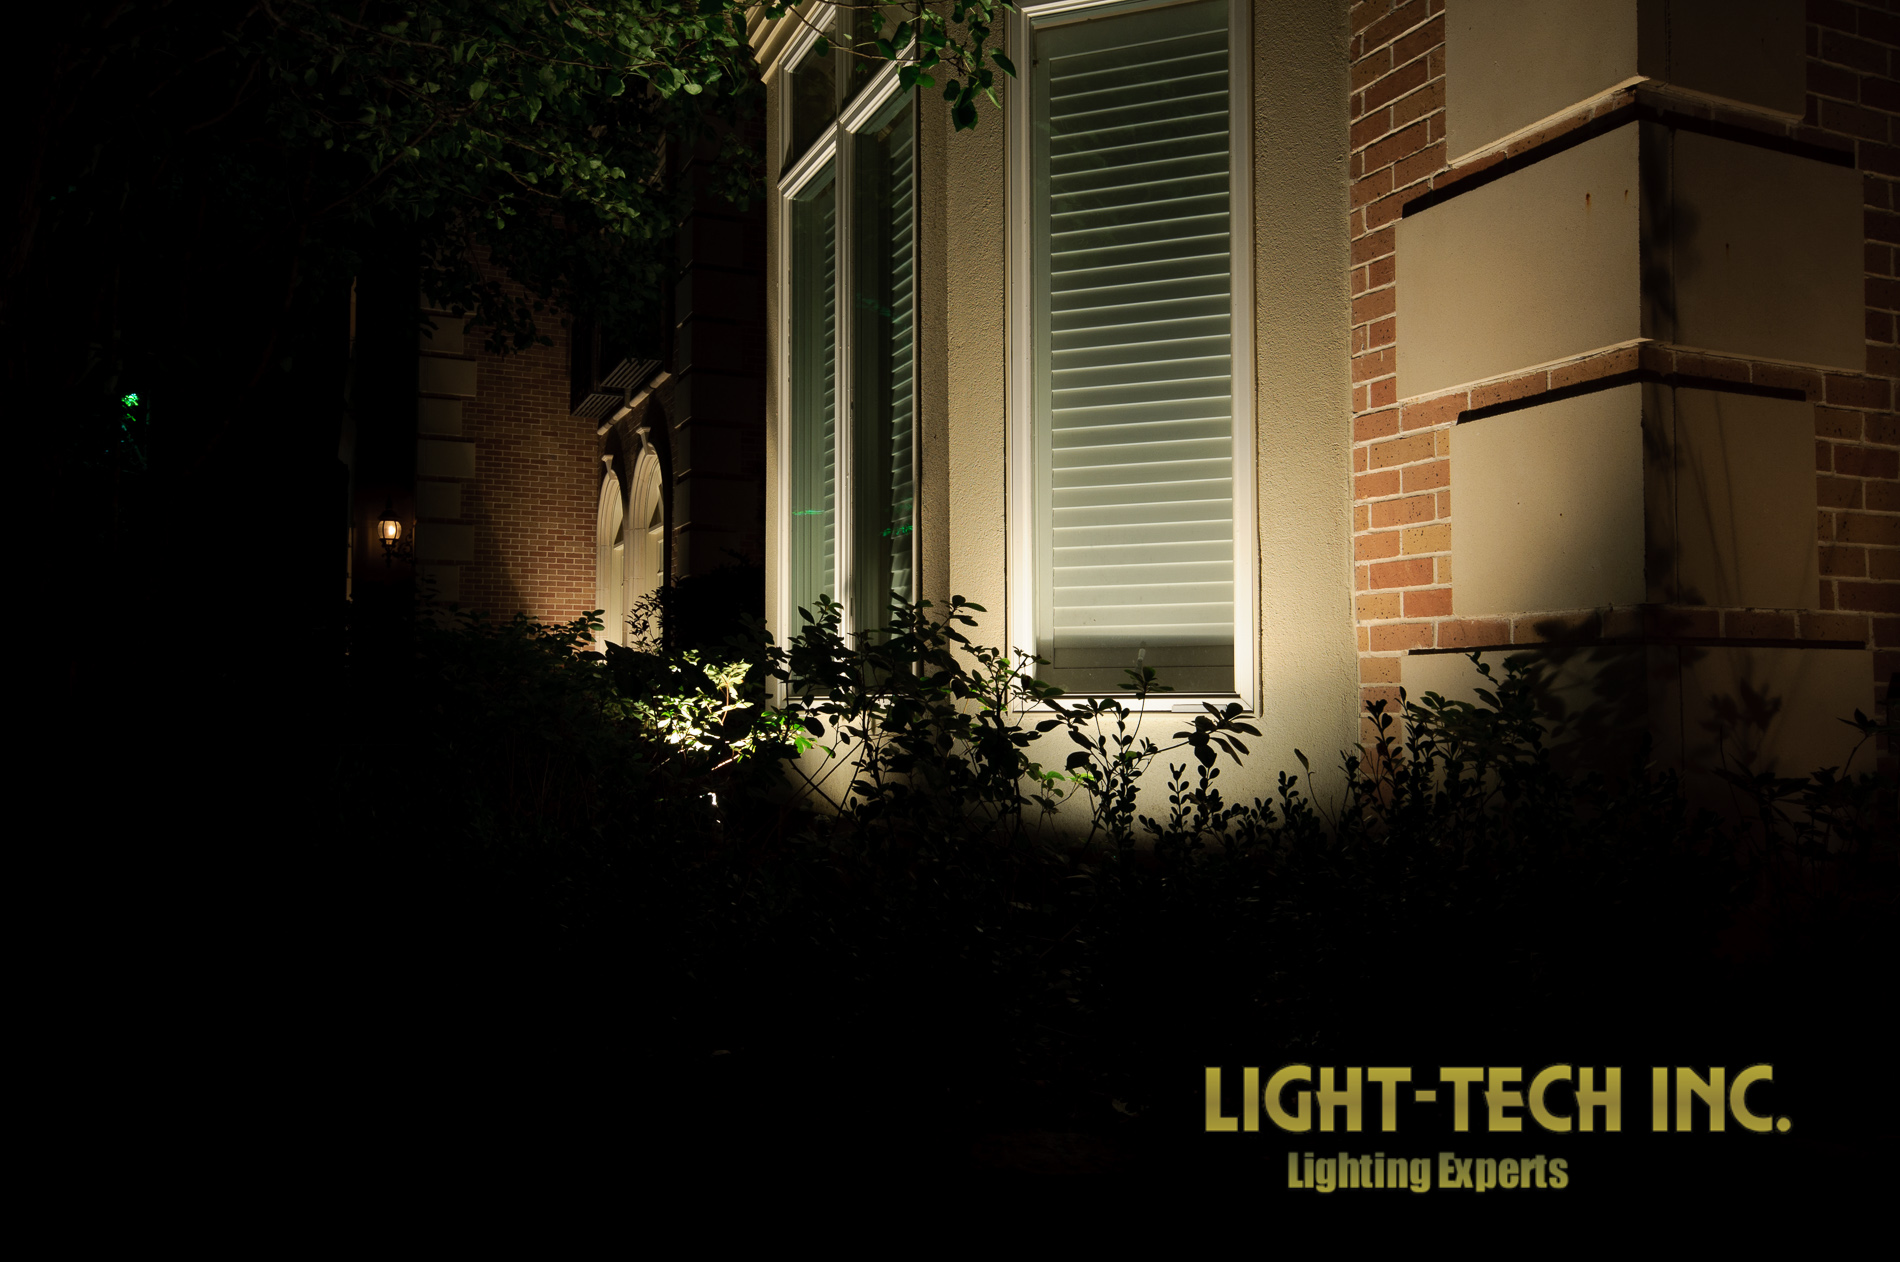 Landscape 10 Light Tech Inc Electrical Contractor And